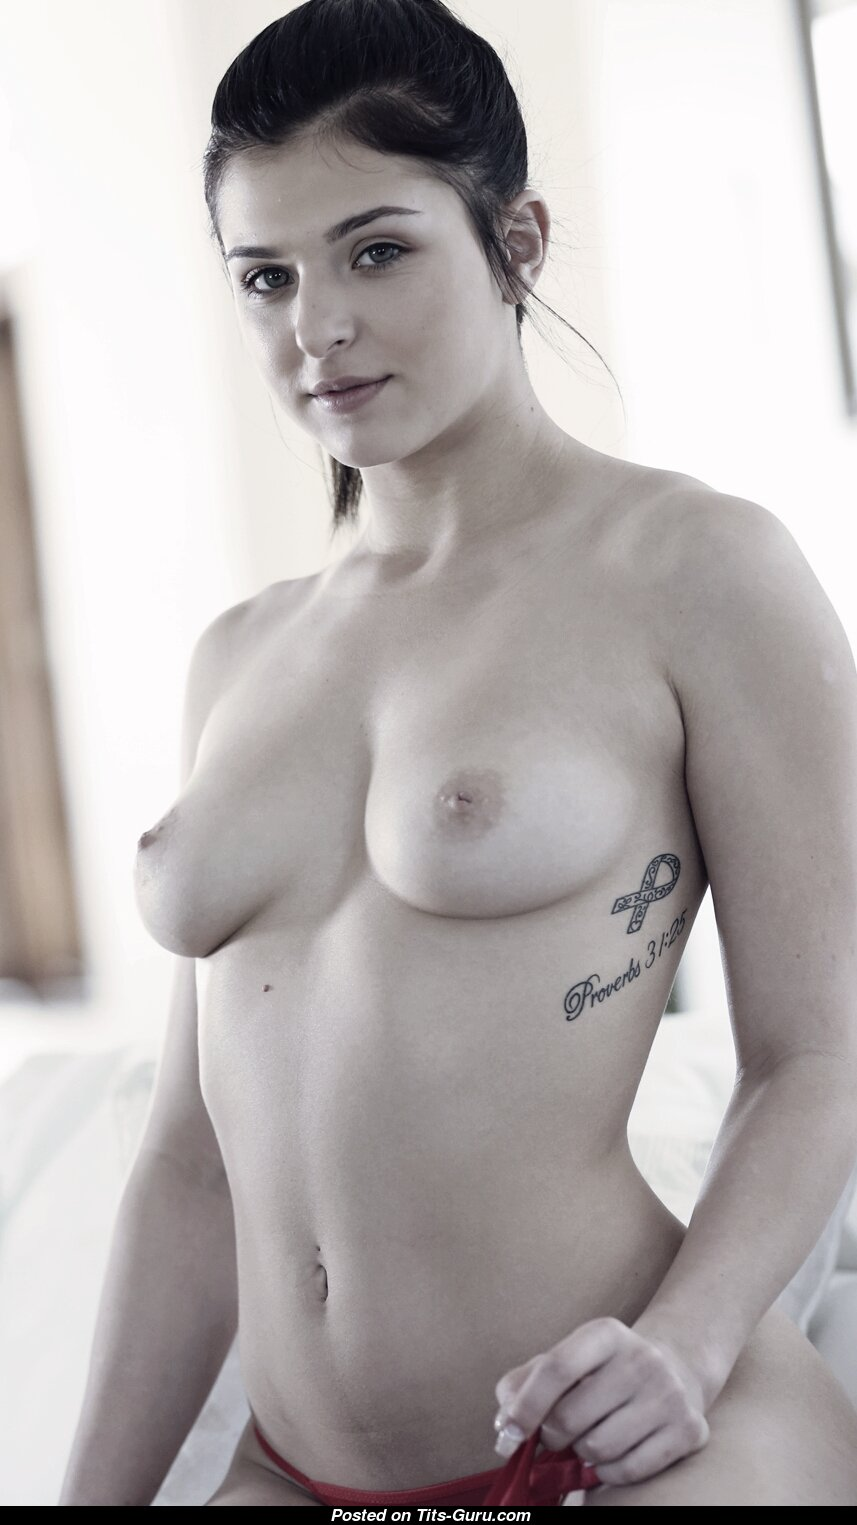 are absolutely right. sexy shaved handjob dick and pissing consider, what very interesting